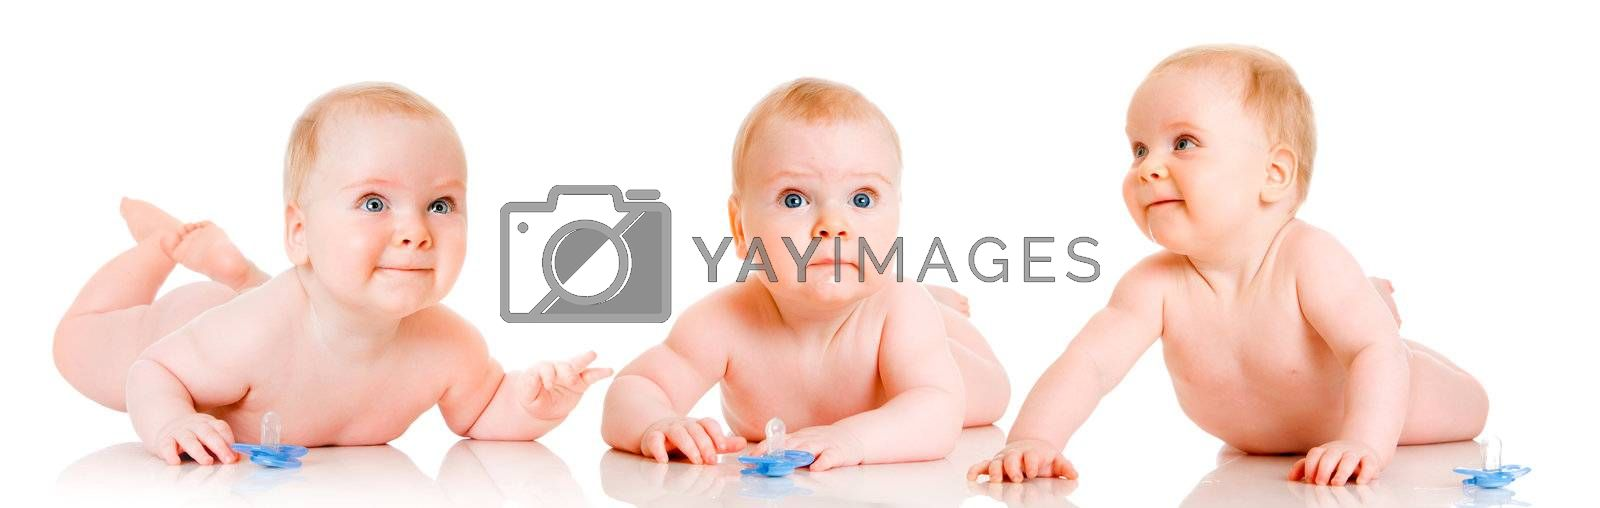 triplet babies on a white background